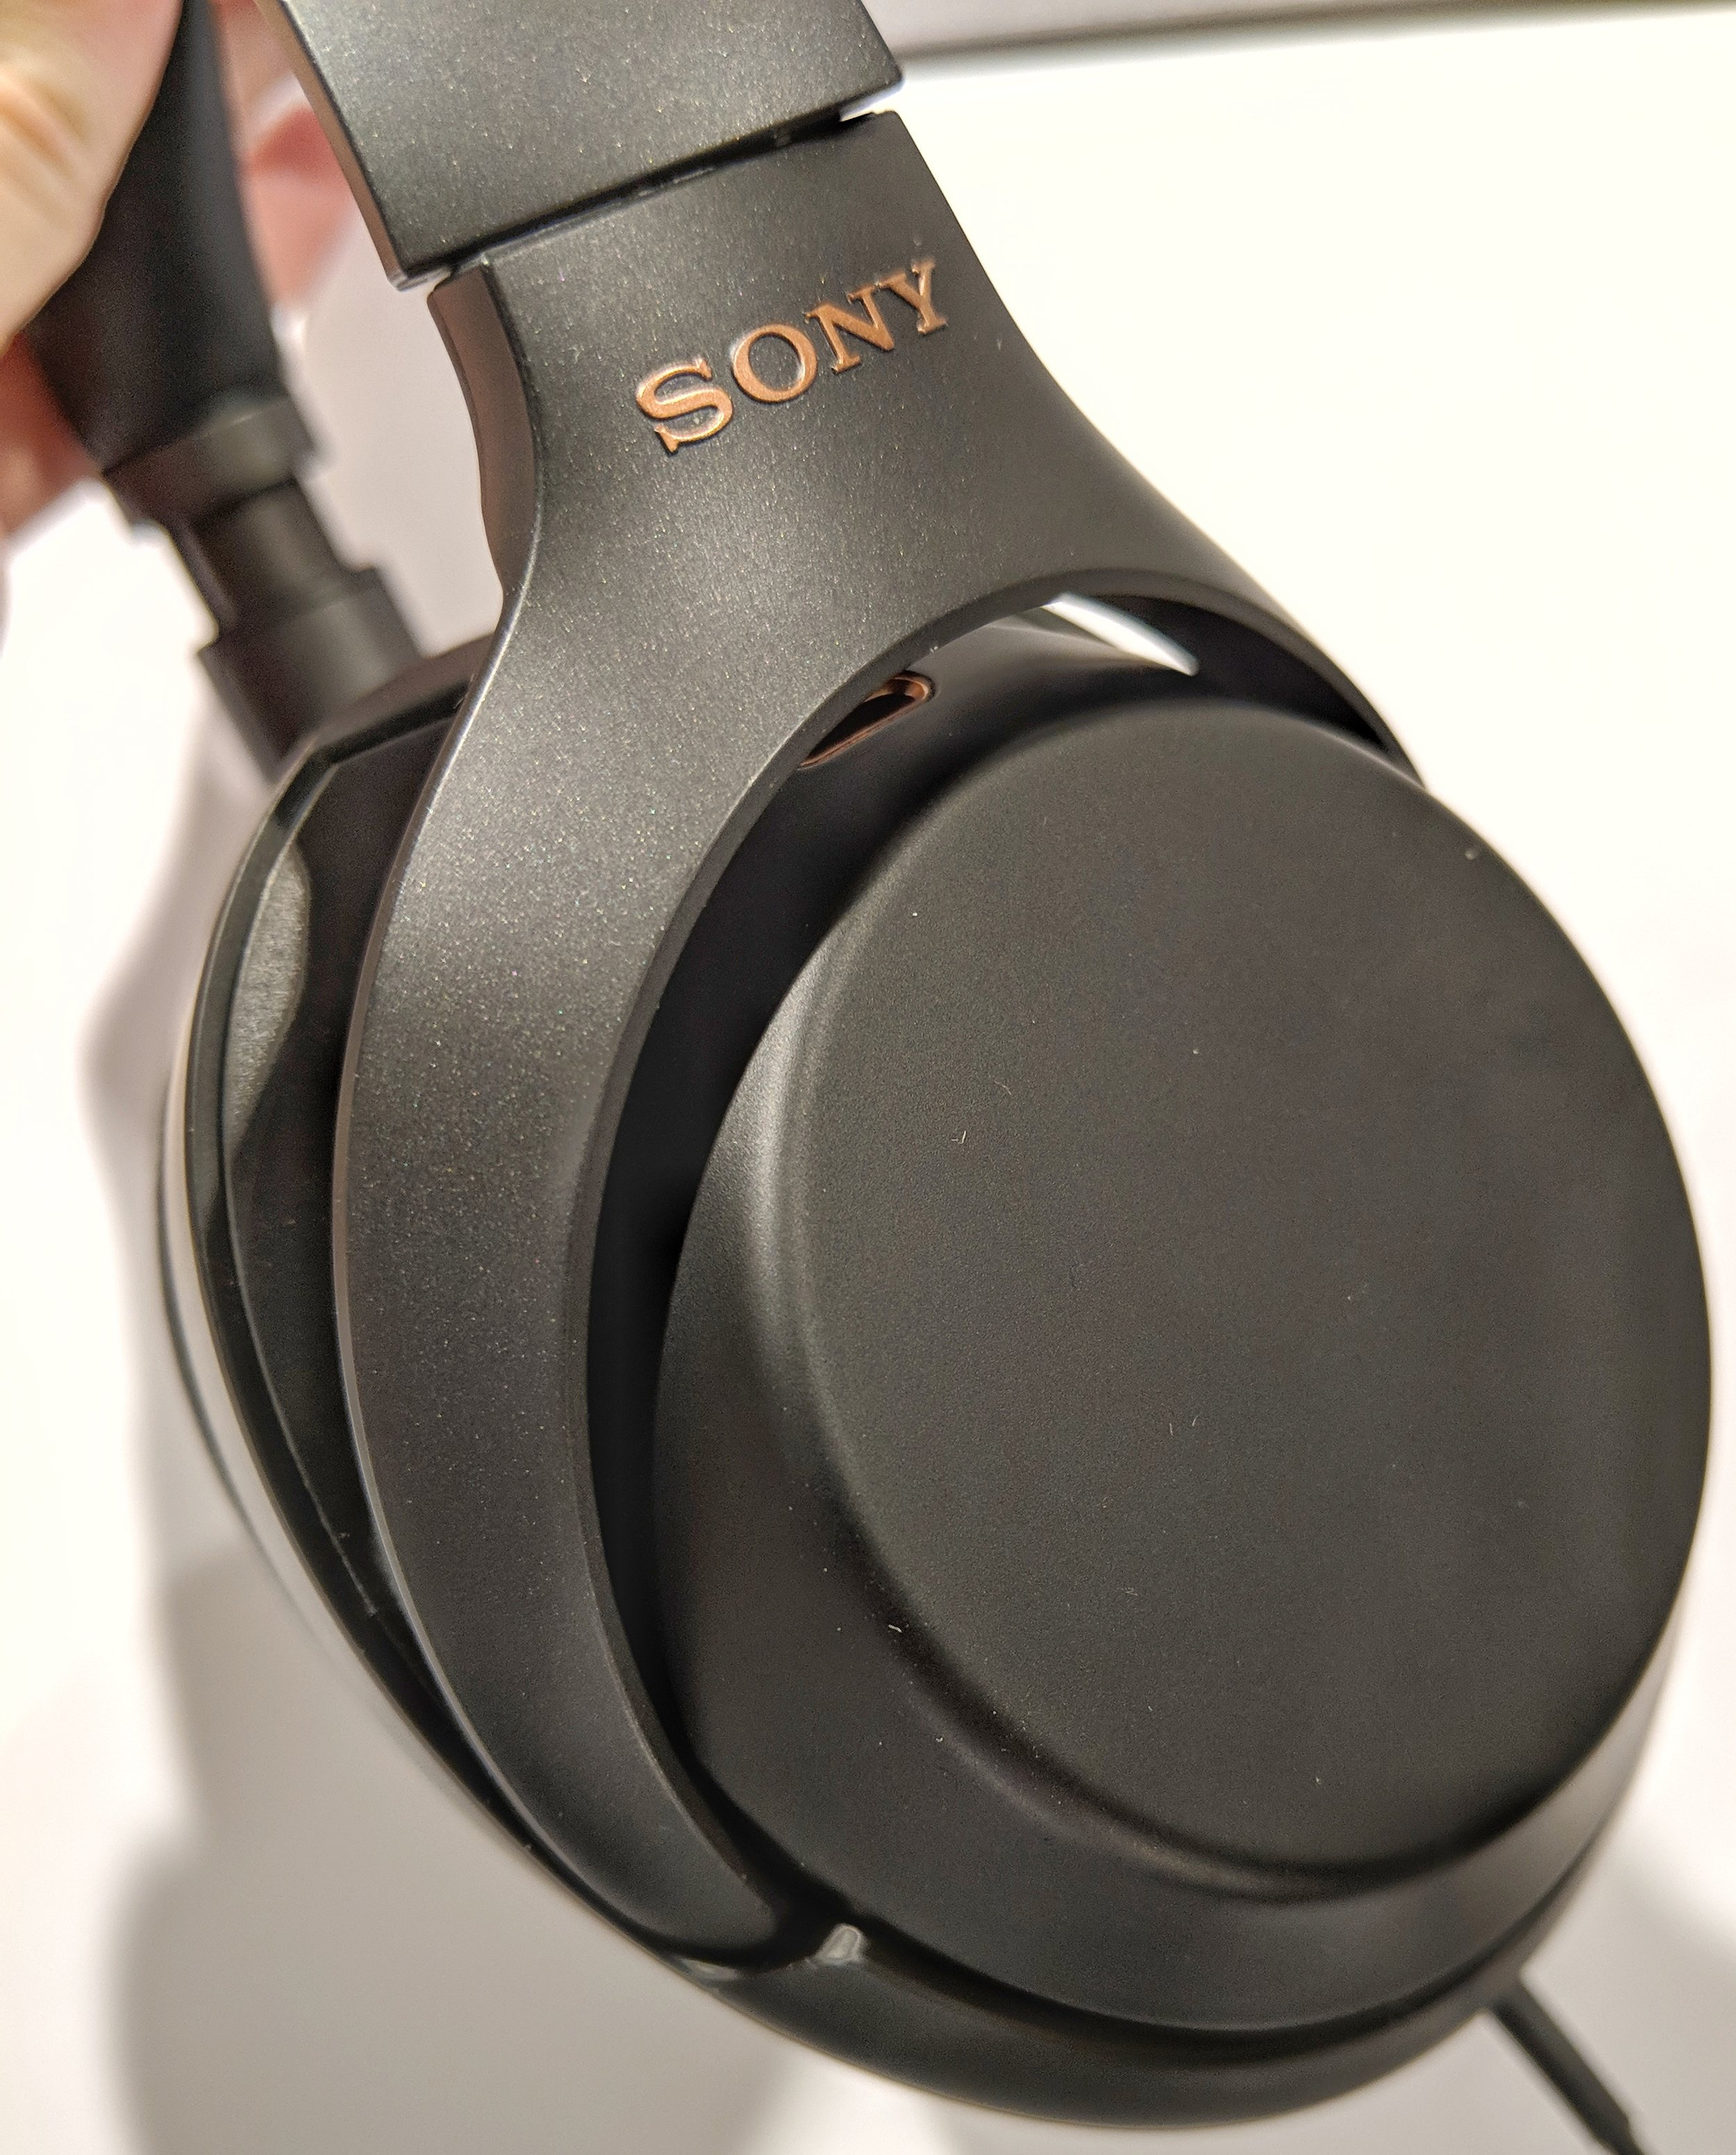 Sony WH-10000 XM3 review